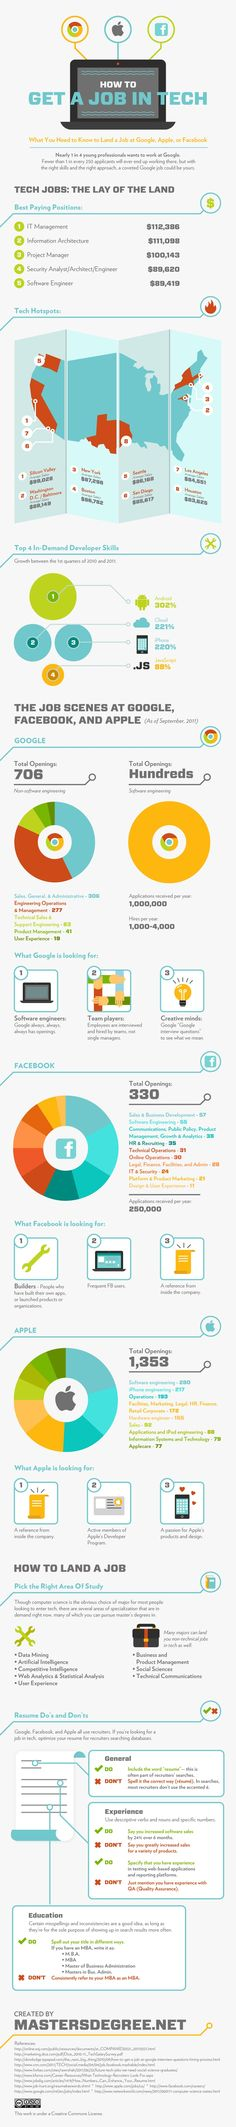 Get a job in tech #infographic